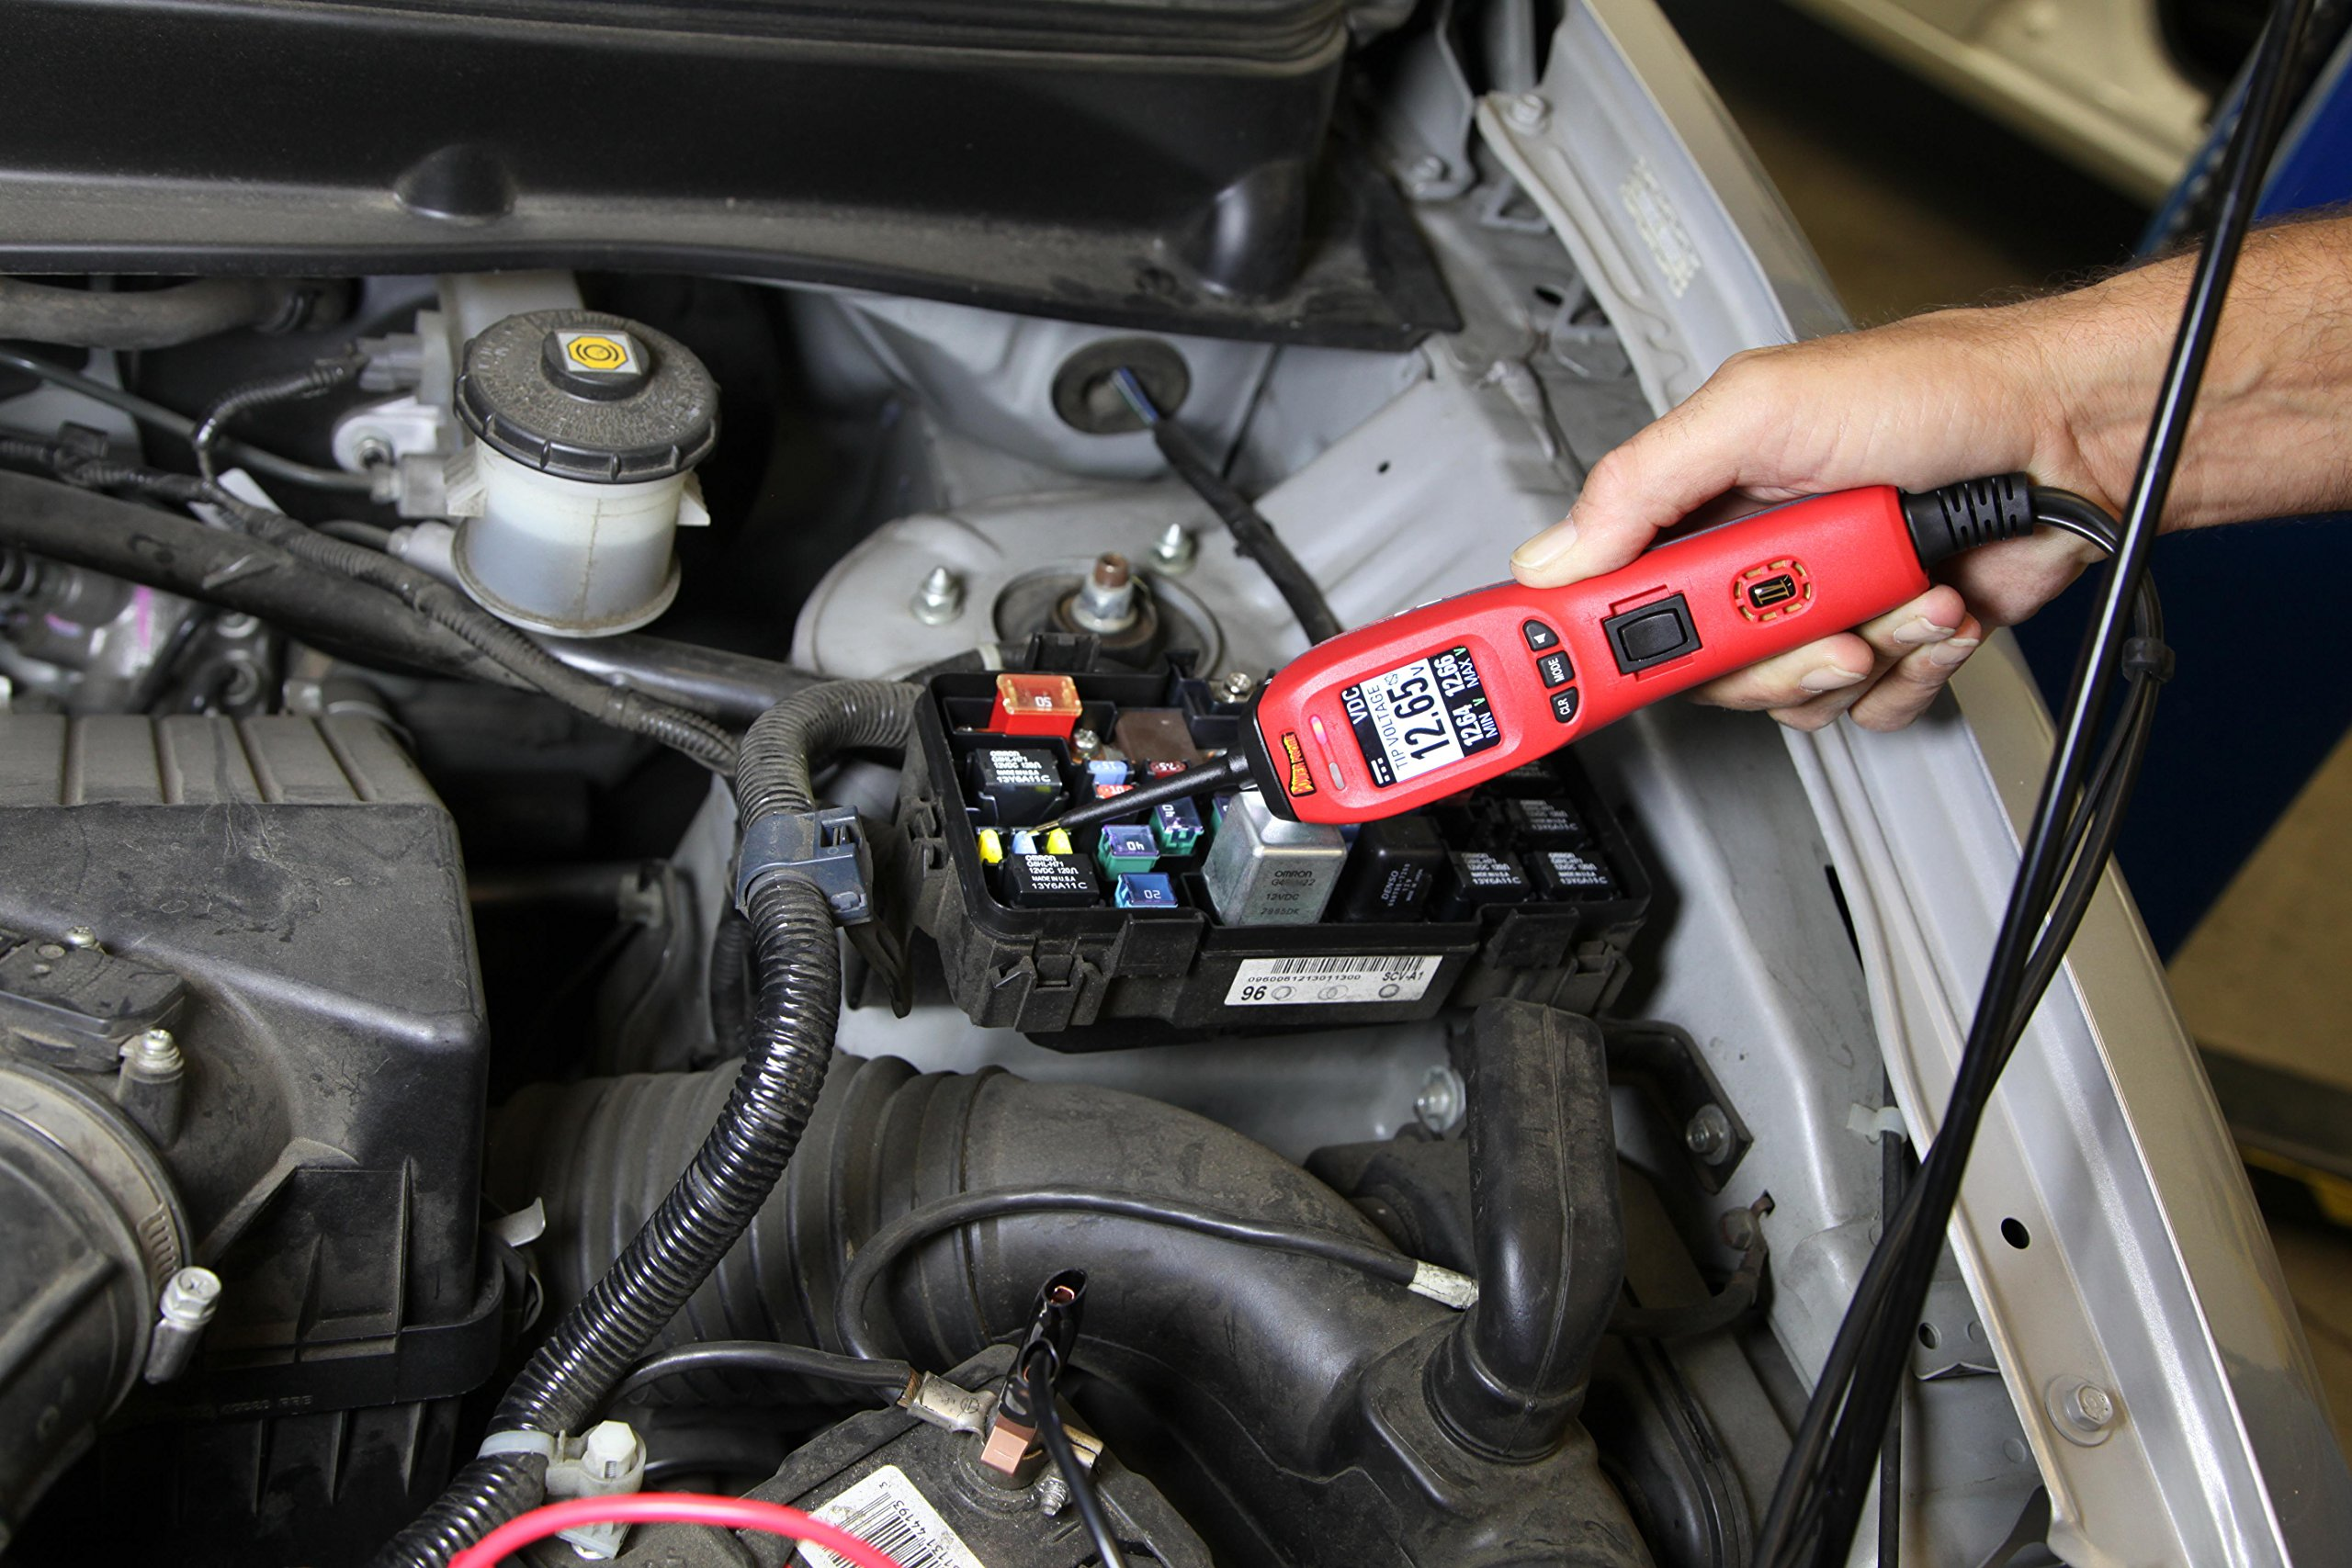 Power Probe IV w/Case & Acc - Red (PP401AS) [Car Diagnostic Test Tool Digital Volt Meter ACDC Current Resistance Circuit Tester Fuel Injector Tester] by Power Probe (Image #3)